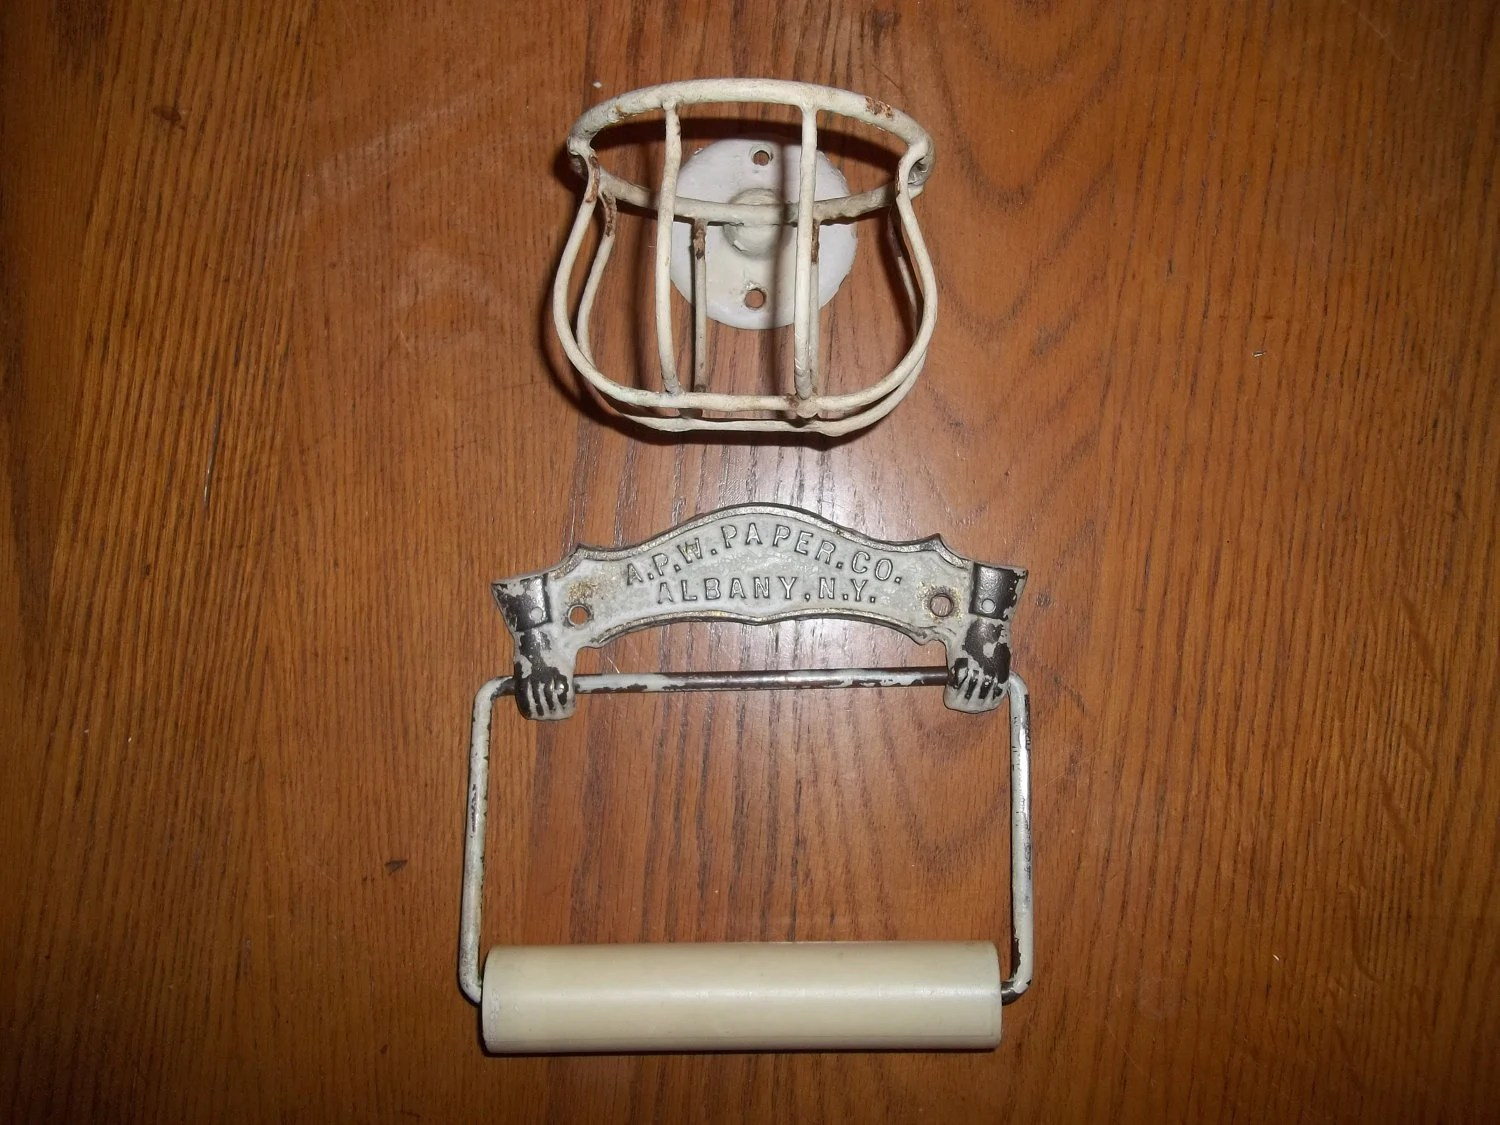 Antique Toilet Paper Dispenser Antique Toilet Paper Holder And Cup Holder